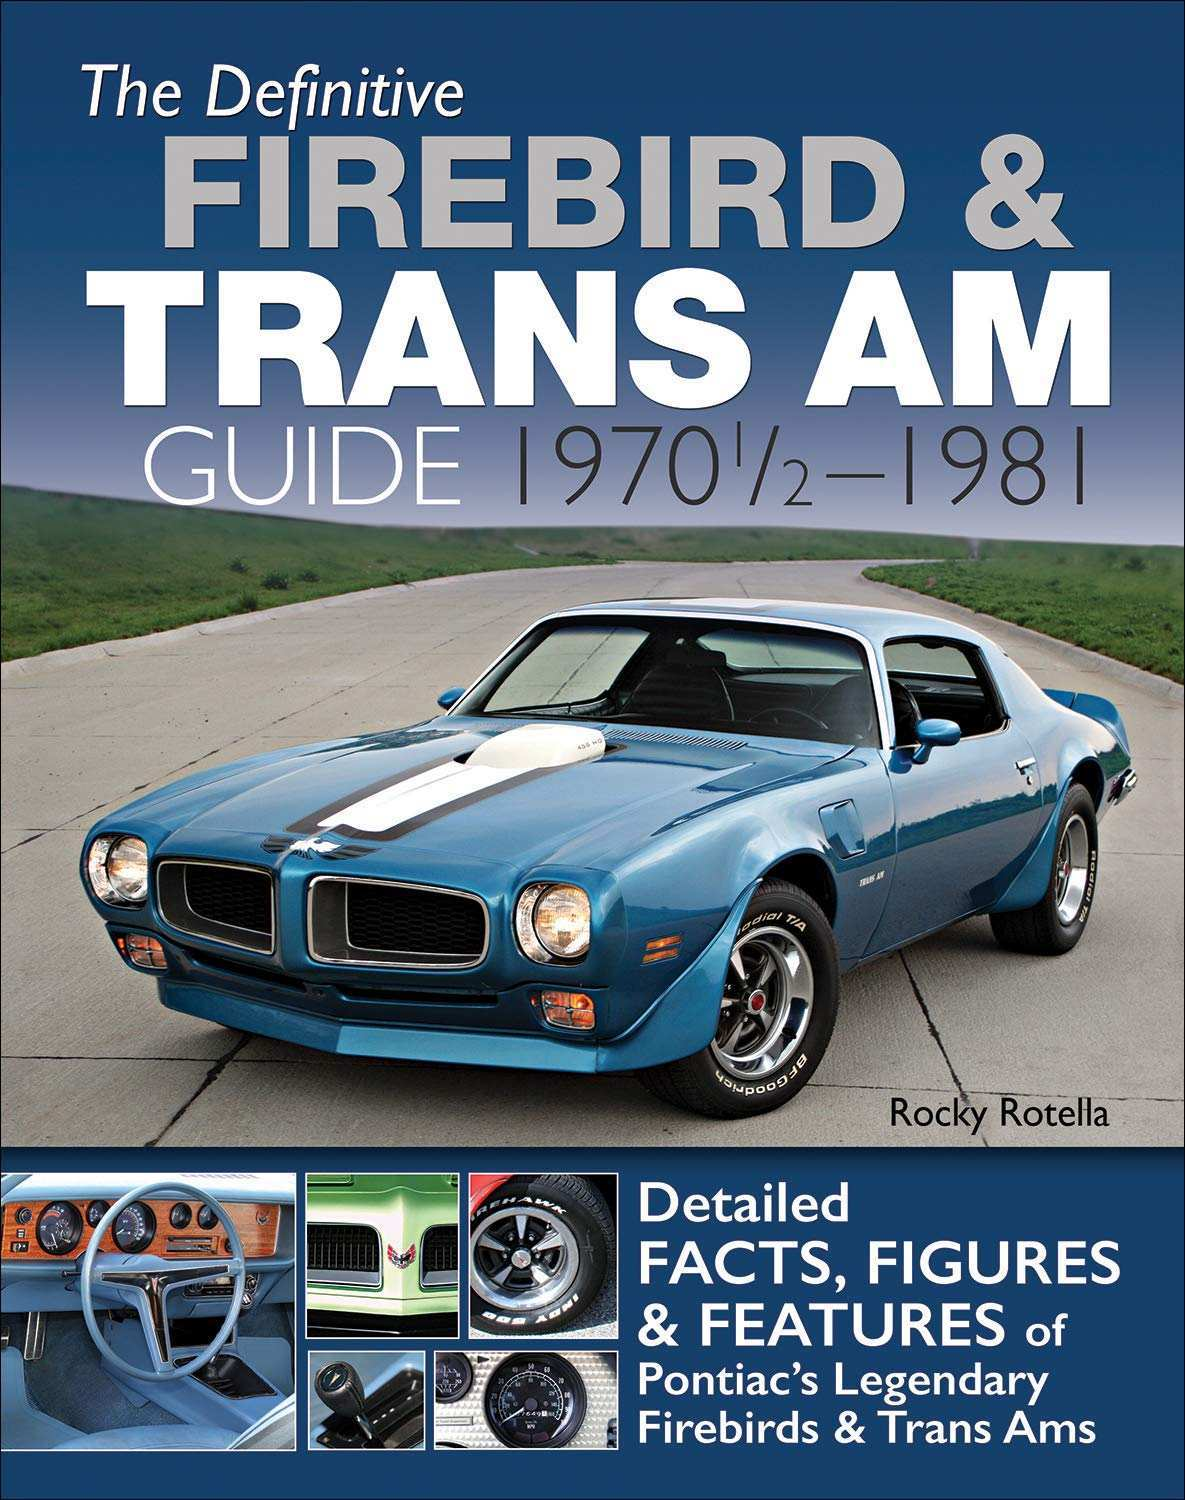 60 Gallery of Pictures Of A Trans Am Interior by Pictures Of A Trans Am